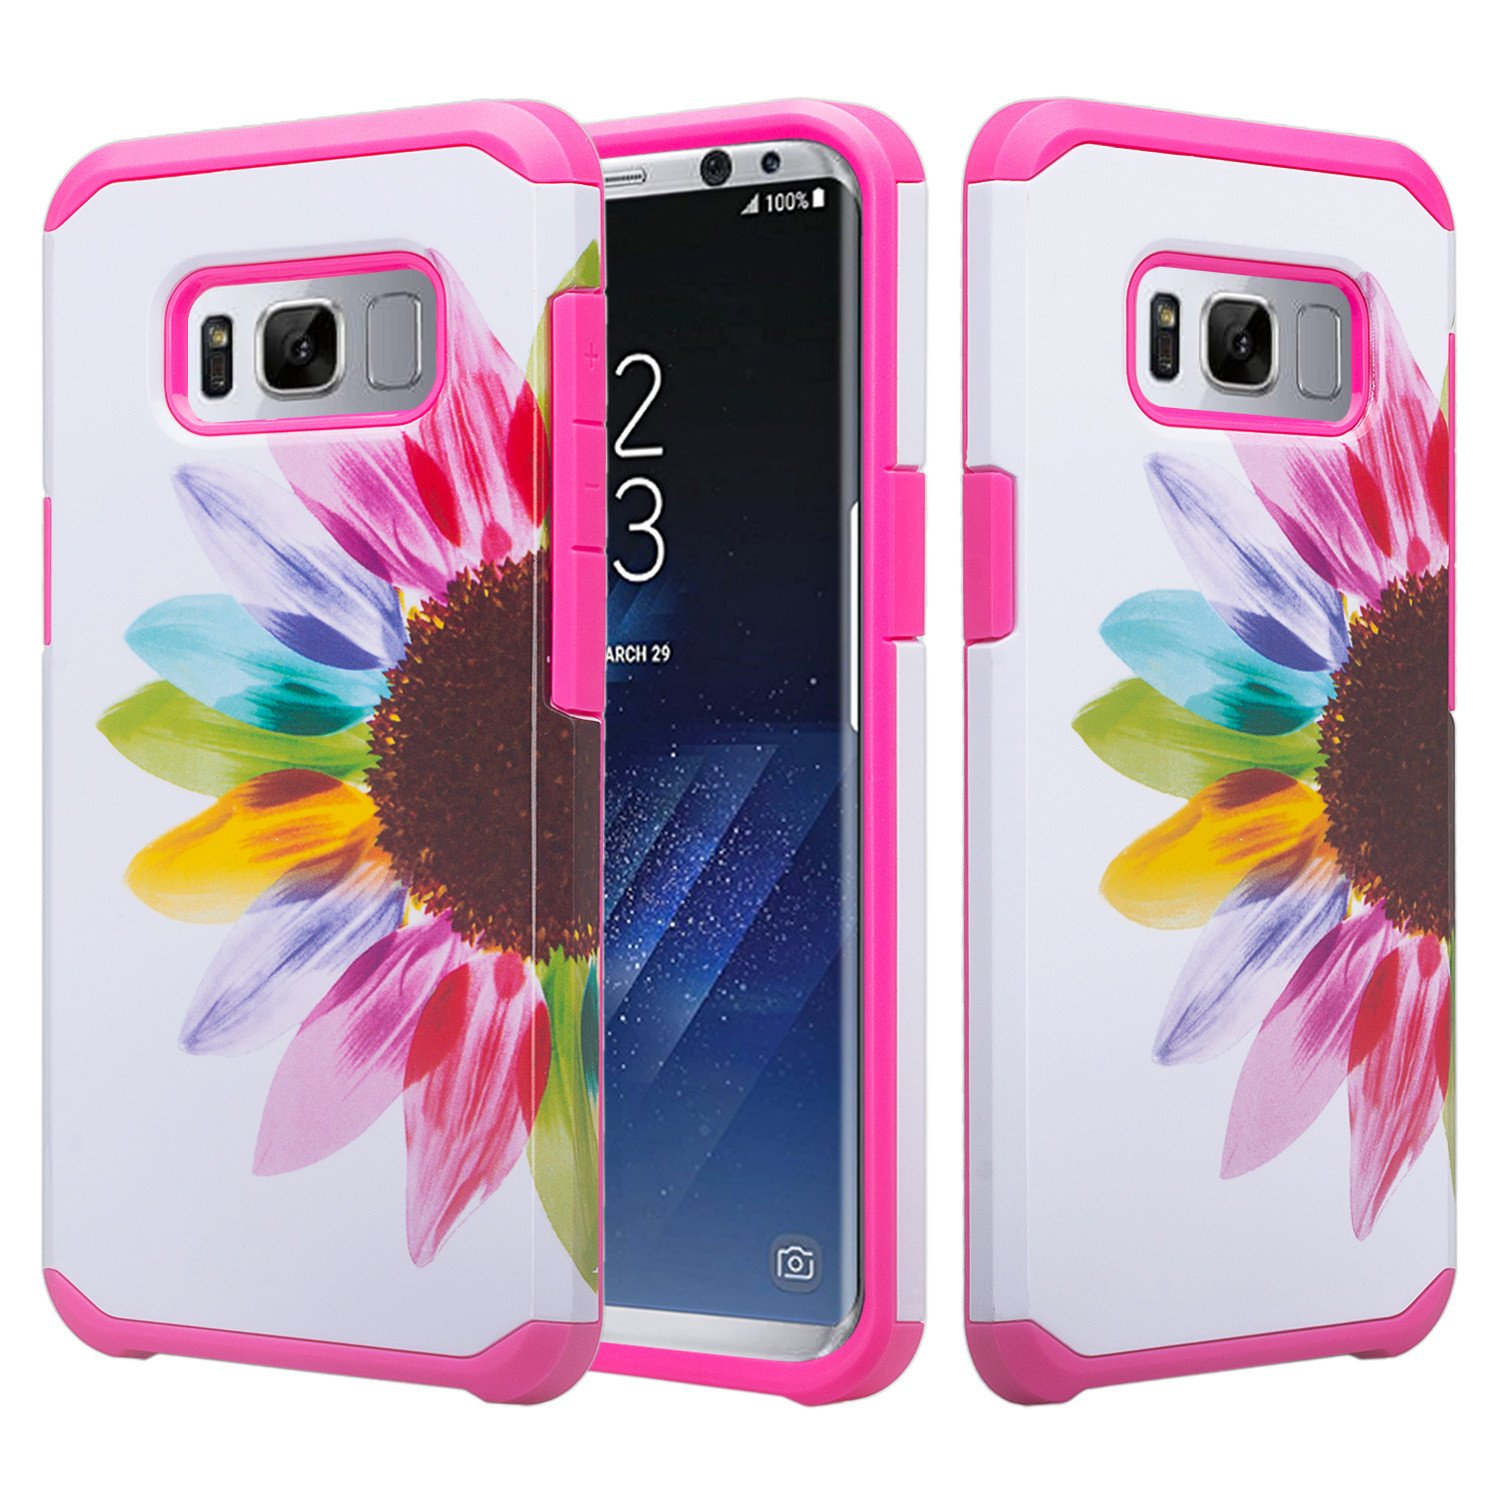 Samsung Galaxy S8 Case, Slim Hybrid Dual Layer[Shock Resistant] Protective Case Cover - Vivid Sunflower